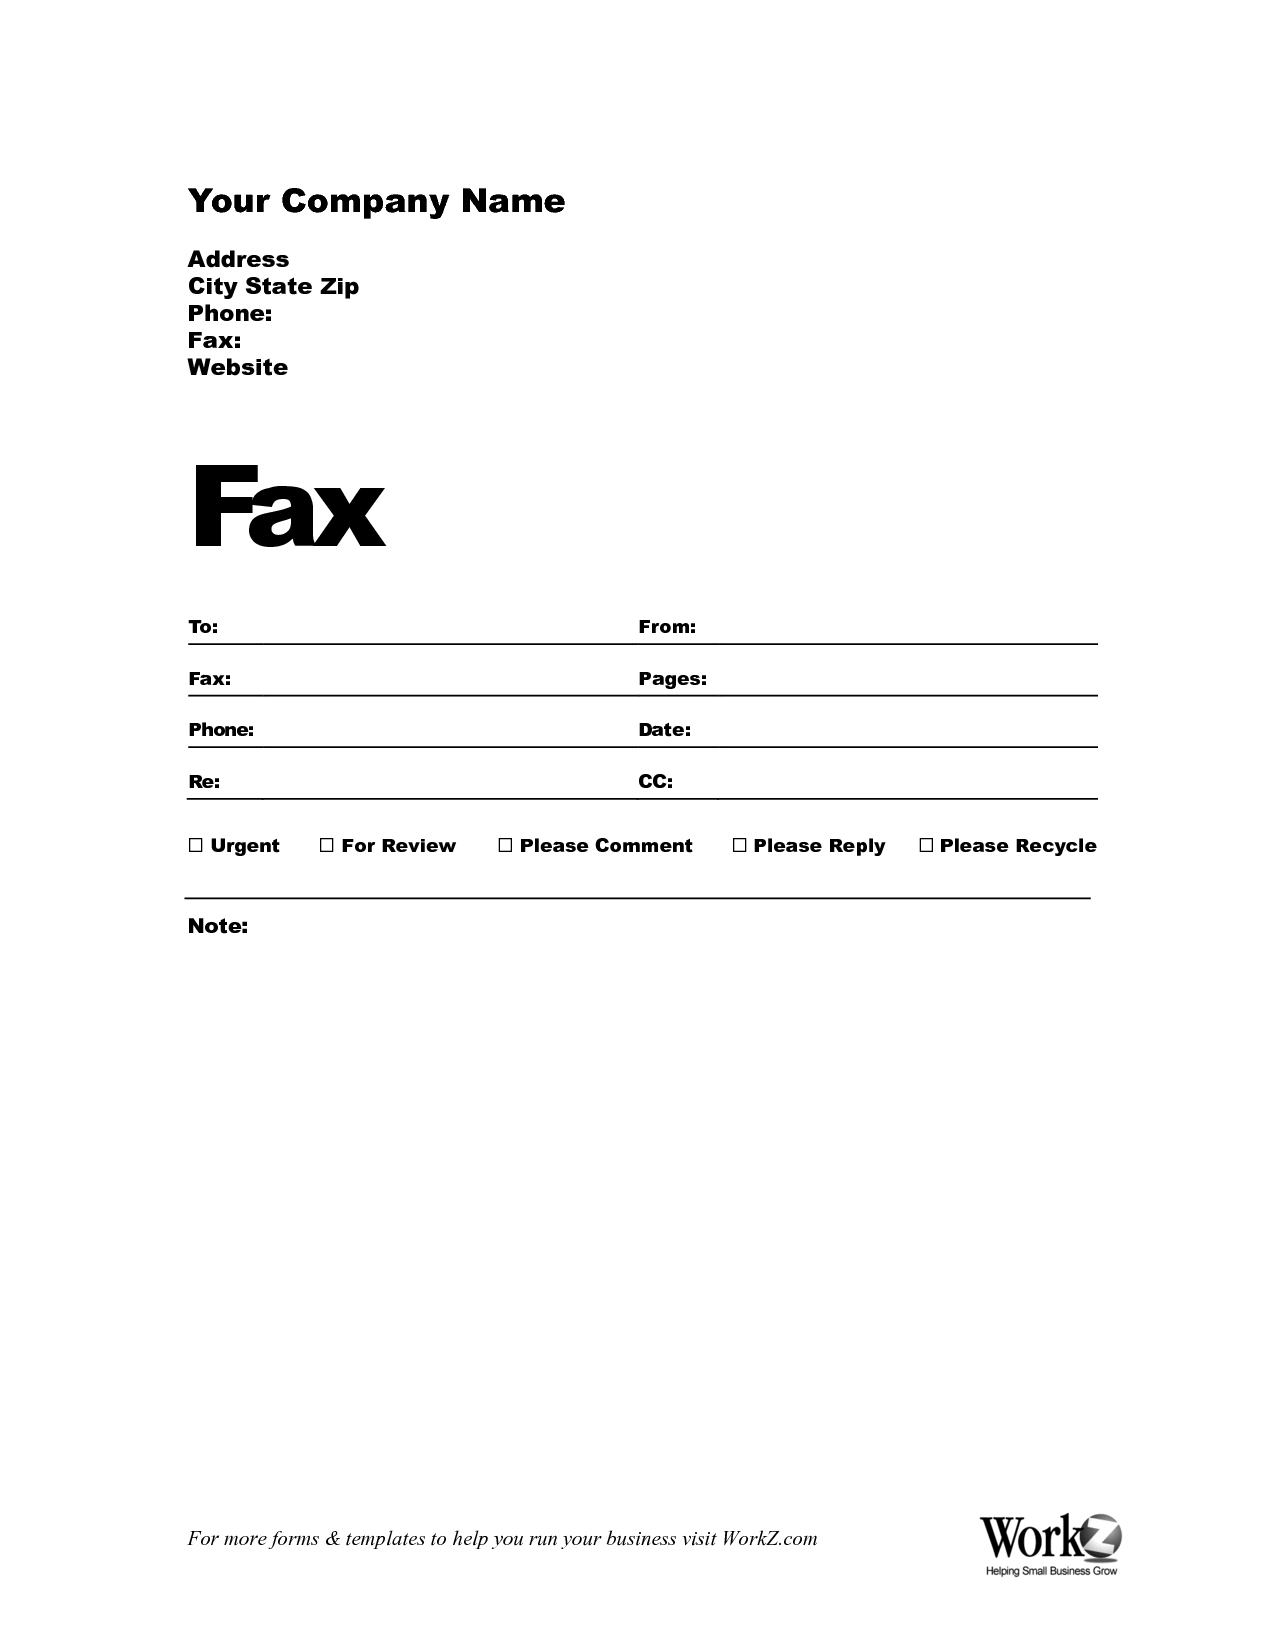 Fax Resume Cover Letter